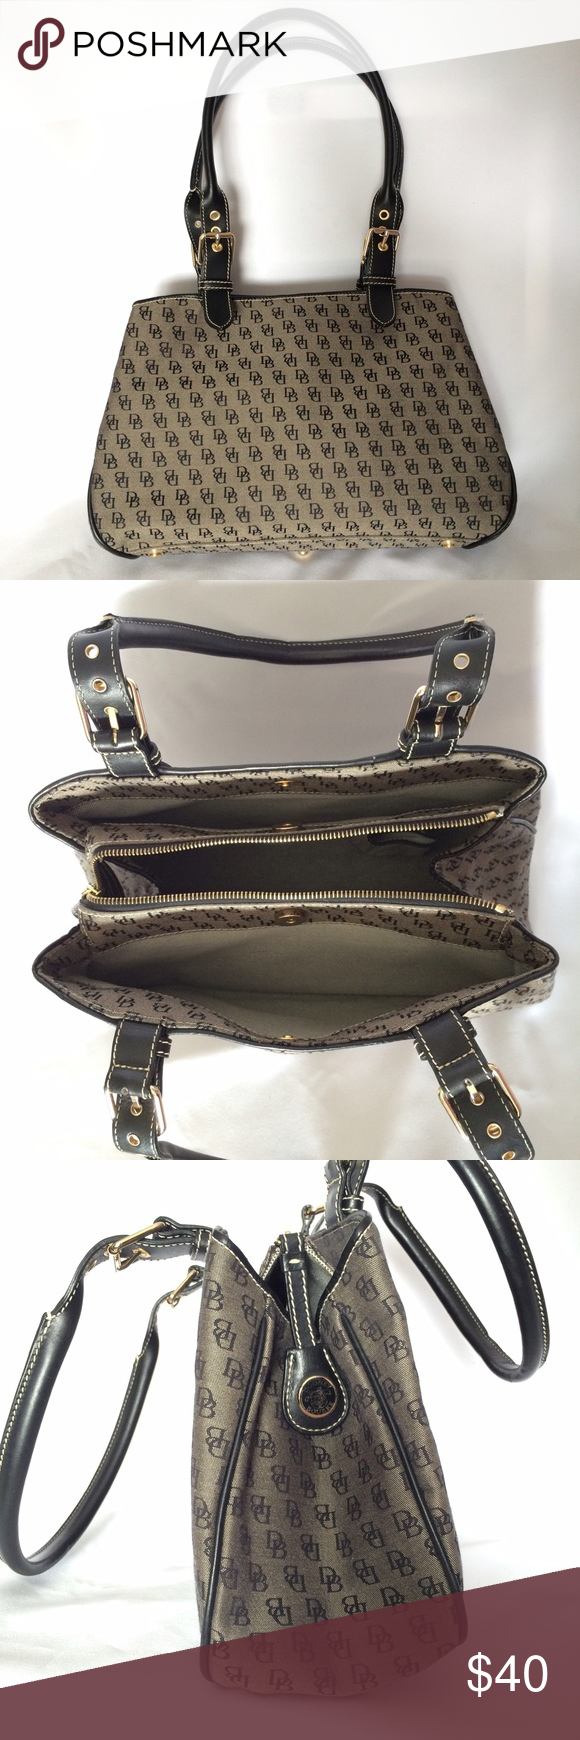 Dooney and Bourke Double Strap Satchel Purse Excellent condition.Only used once. Black/Grey D&B logo canvas. Has 3 compartments: 2 side compartments with magnetic closure; middle compartment zips closed-also has phone pocket. Dooney & Bourke Bags Satchels